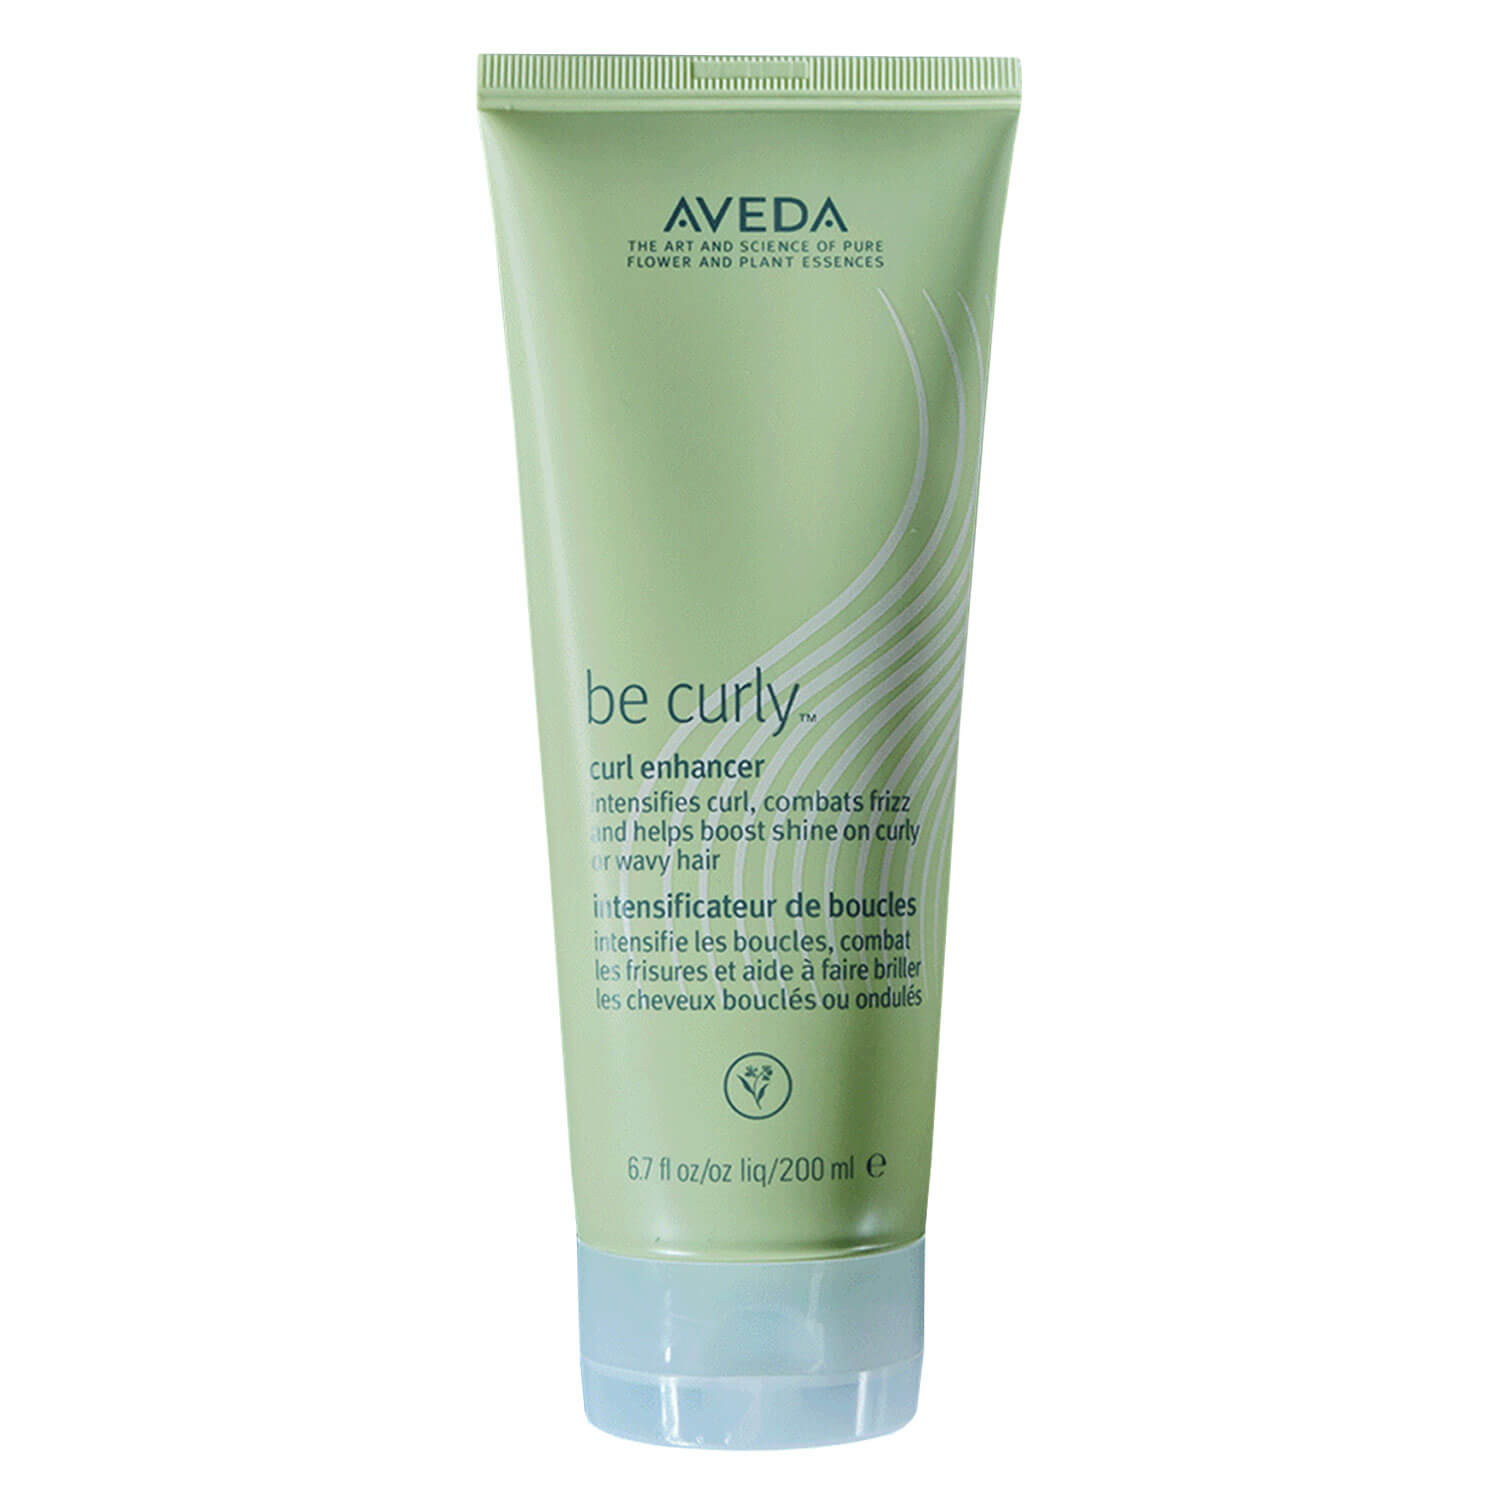 be curly - curl enhancer - 200ml